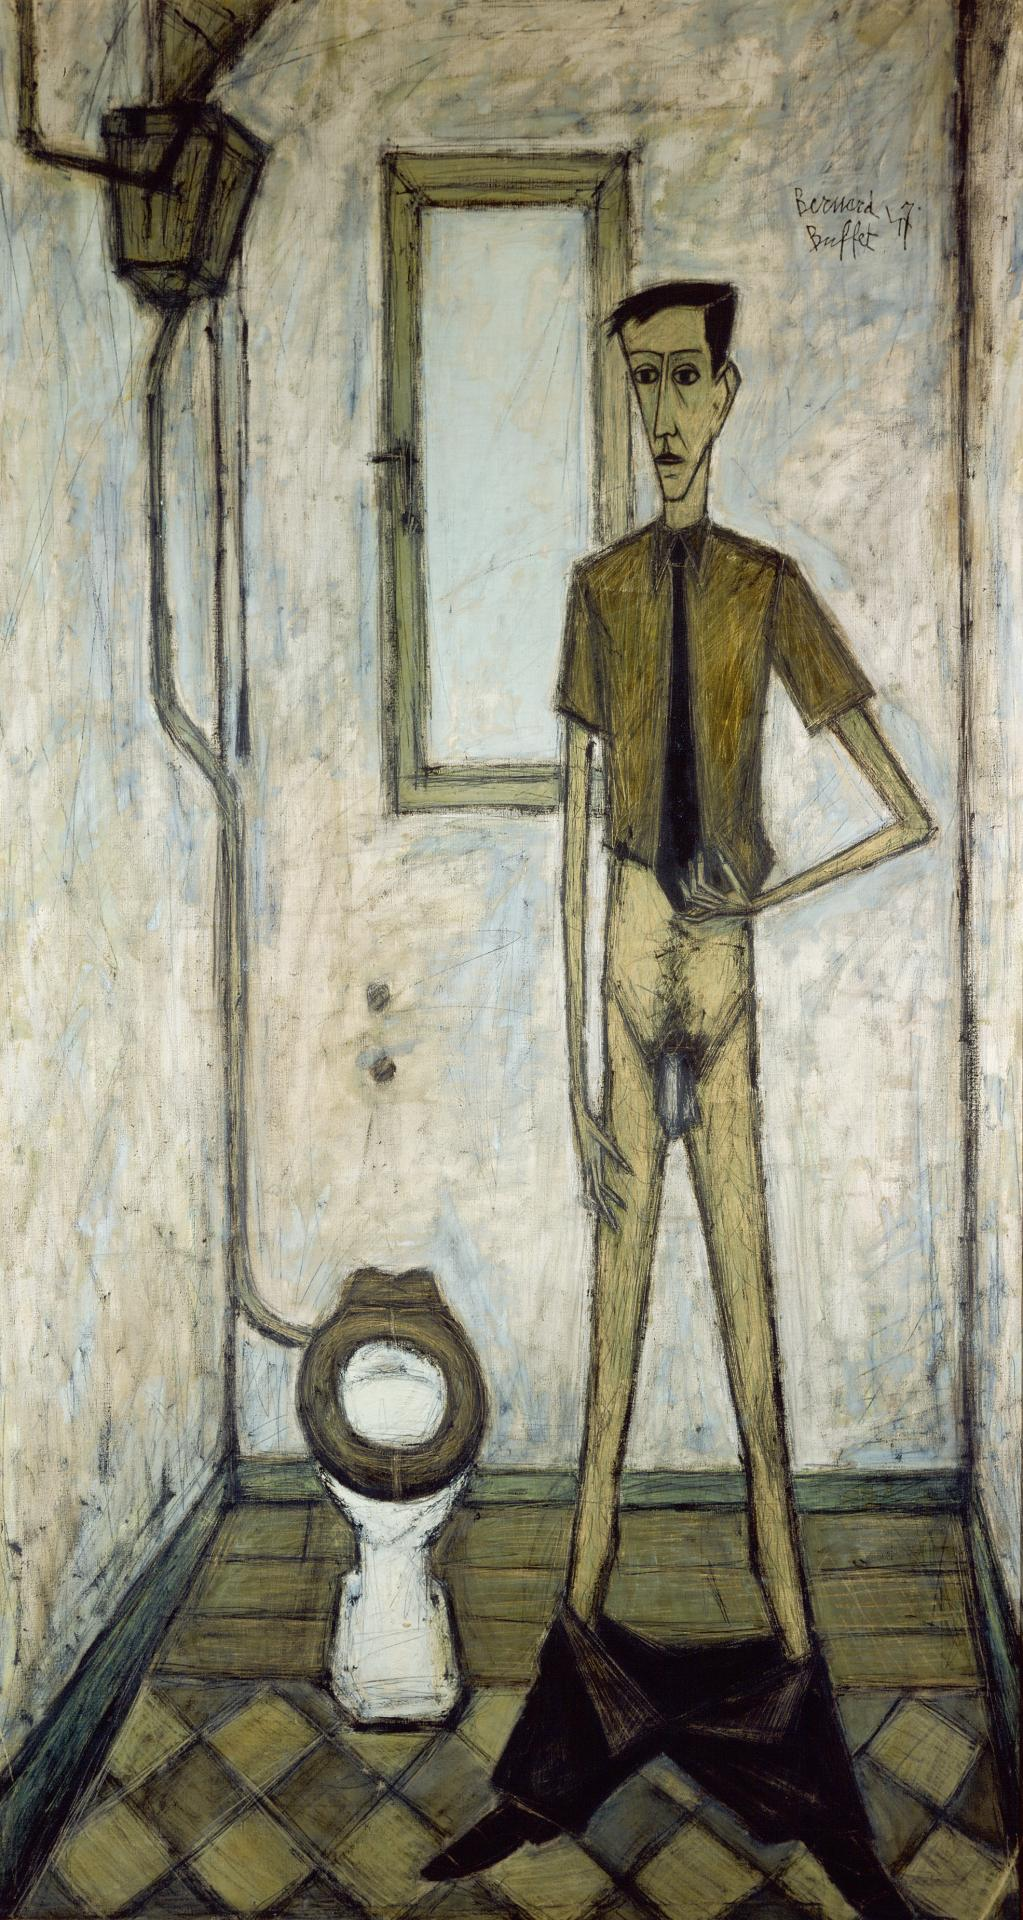 The Last Big Artist in Paris, Bernard Buffet | NGV